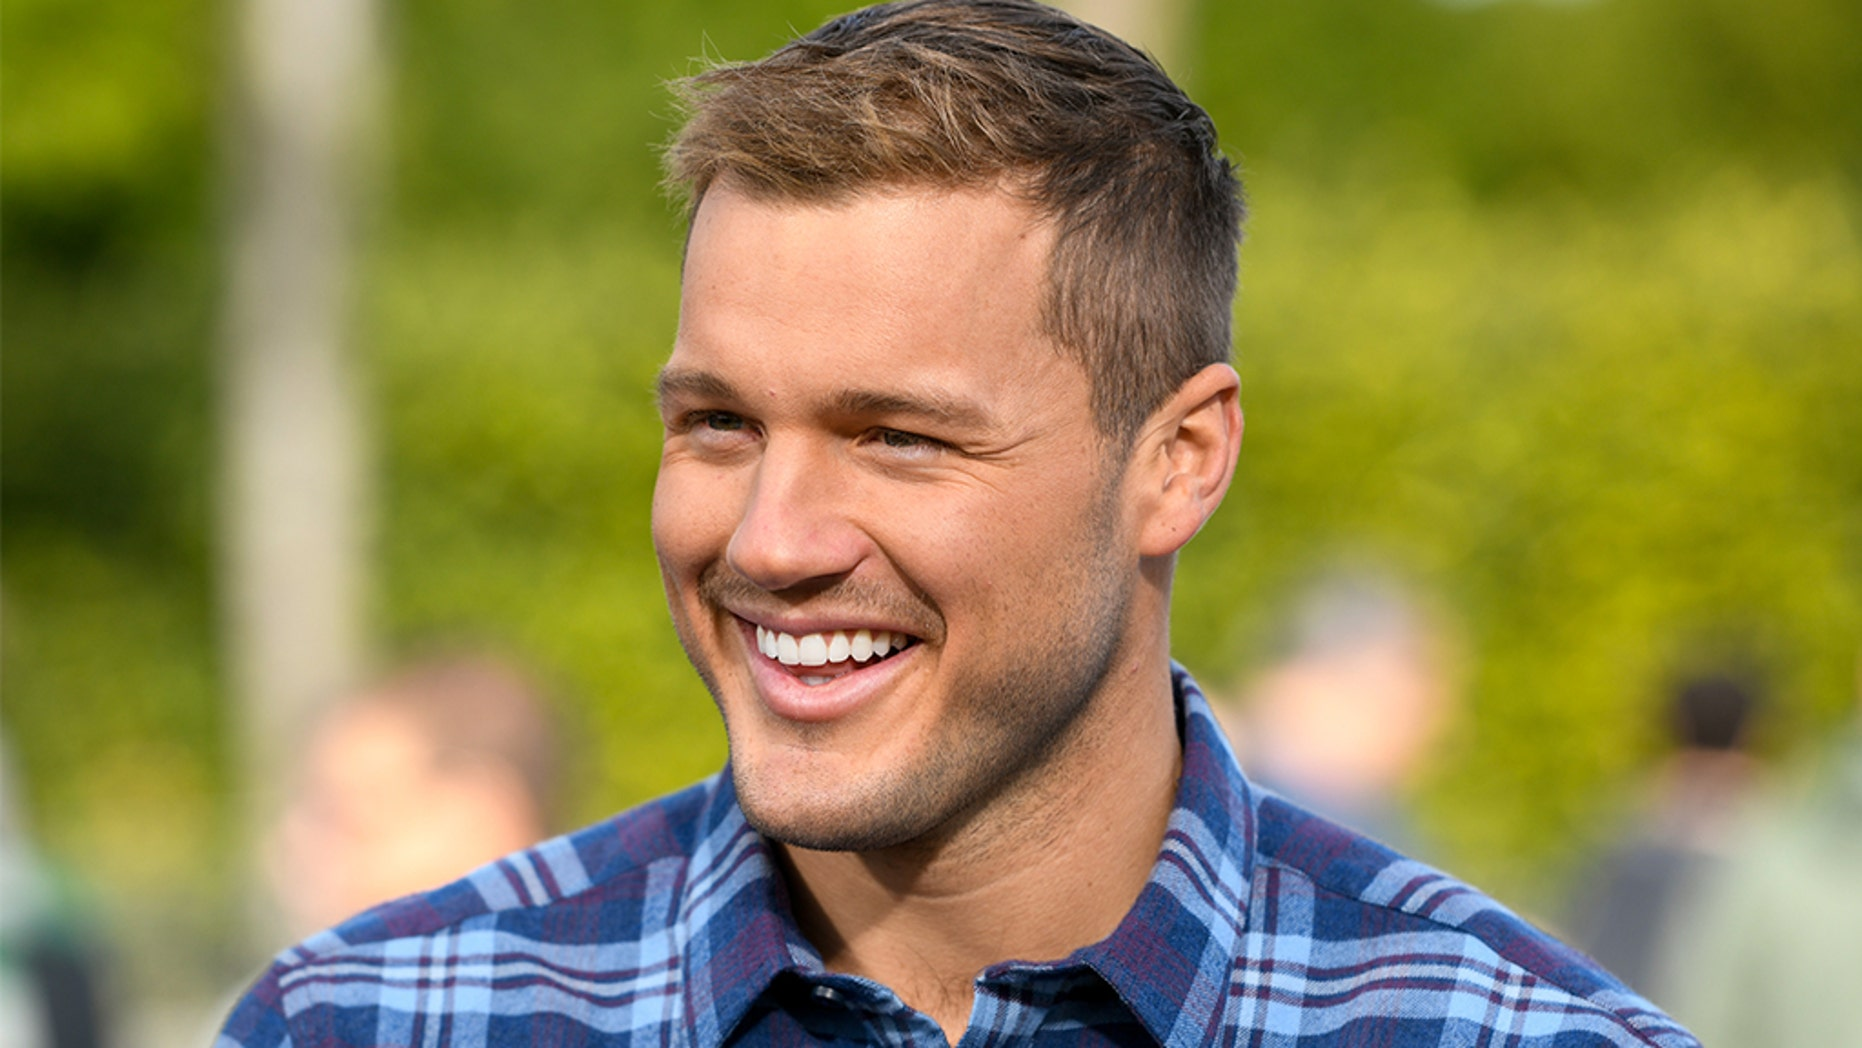 """Colton Underwood, the current star of ABC's """"The Bachelor,"""" claims he was groped at a recent charity event.?(Photo by Noel Vasquez/Getty Images)"""